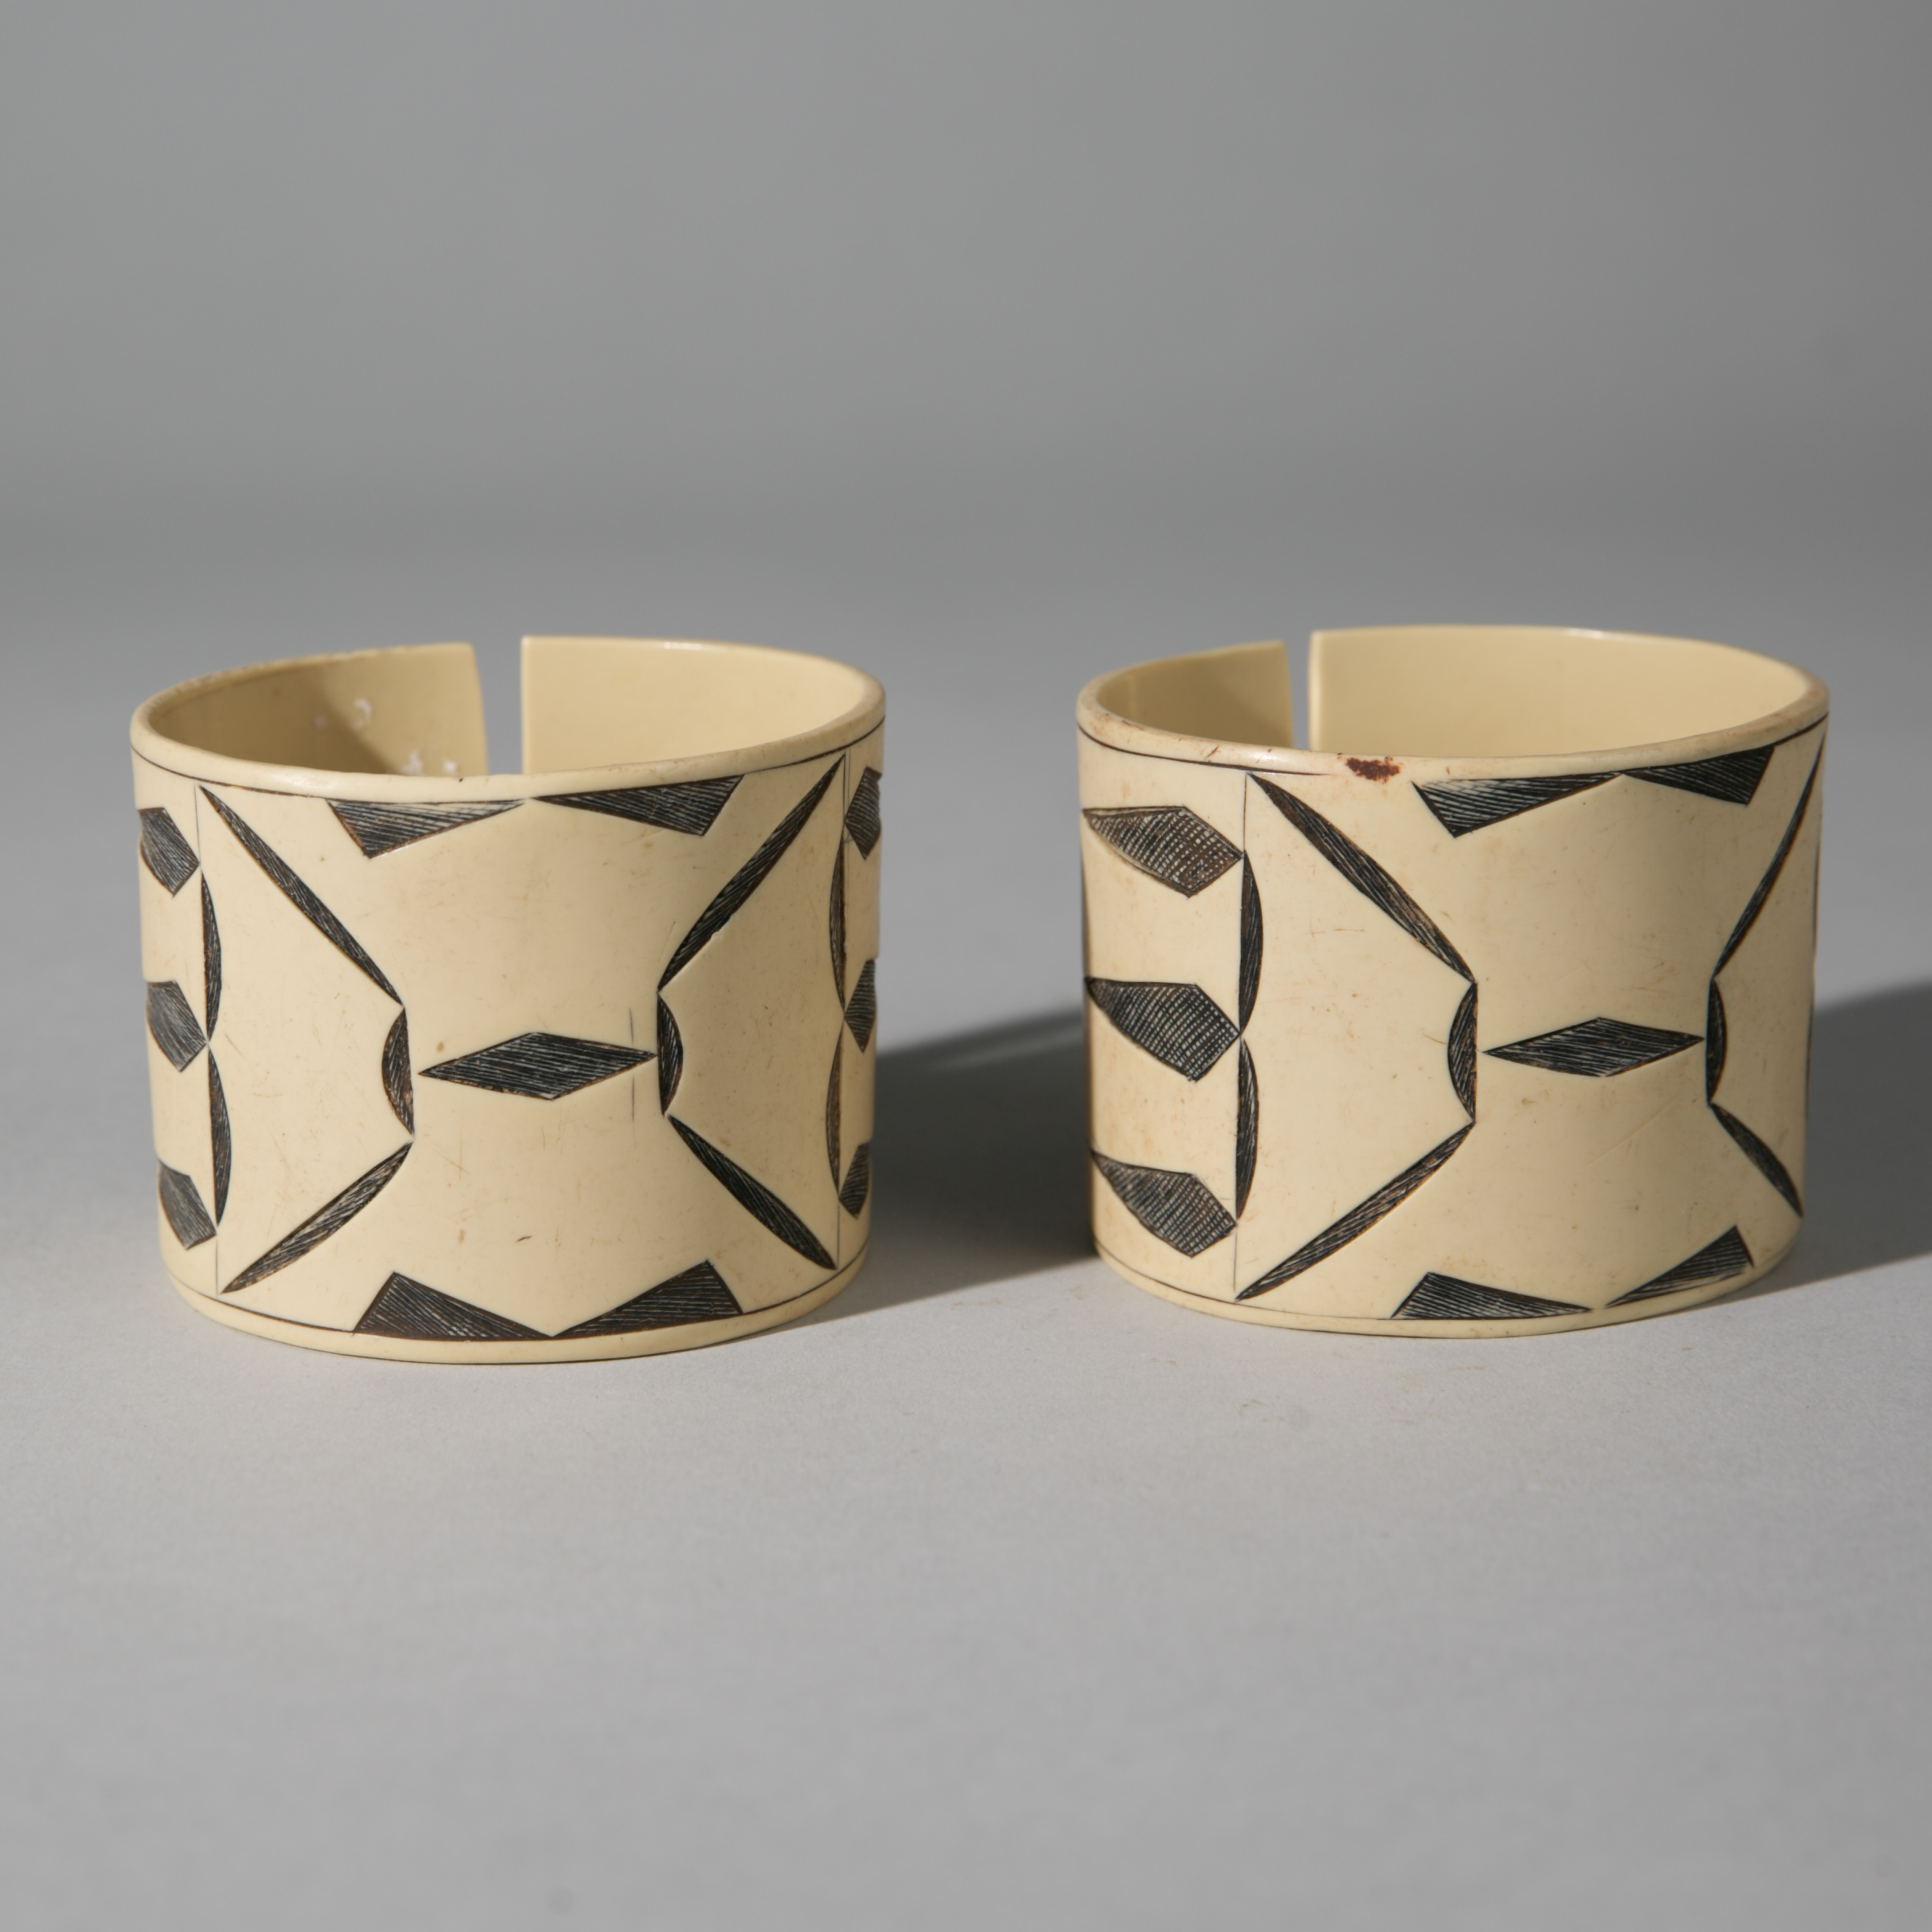 Sold YEARS-A BEAUTEOUS PAIR OF HIMBA CUFFS, NAMIBIA ( No 3968 )